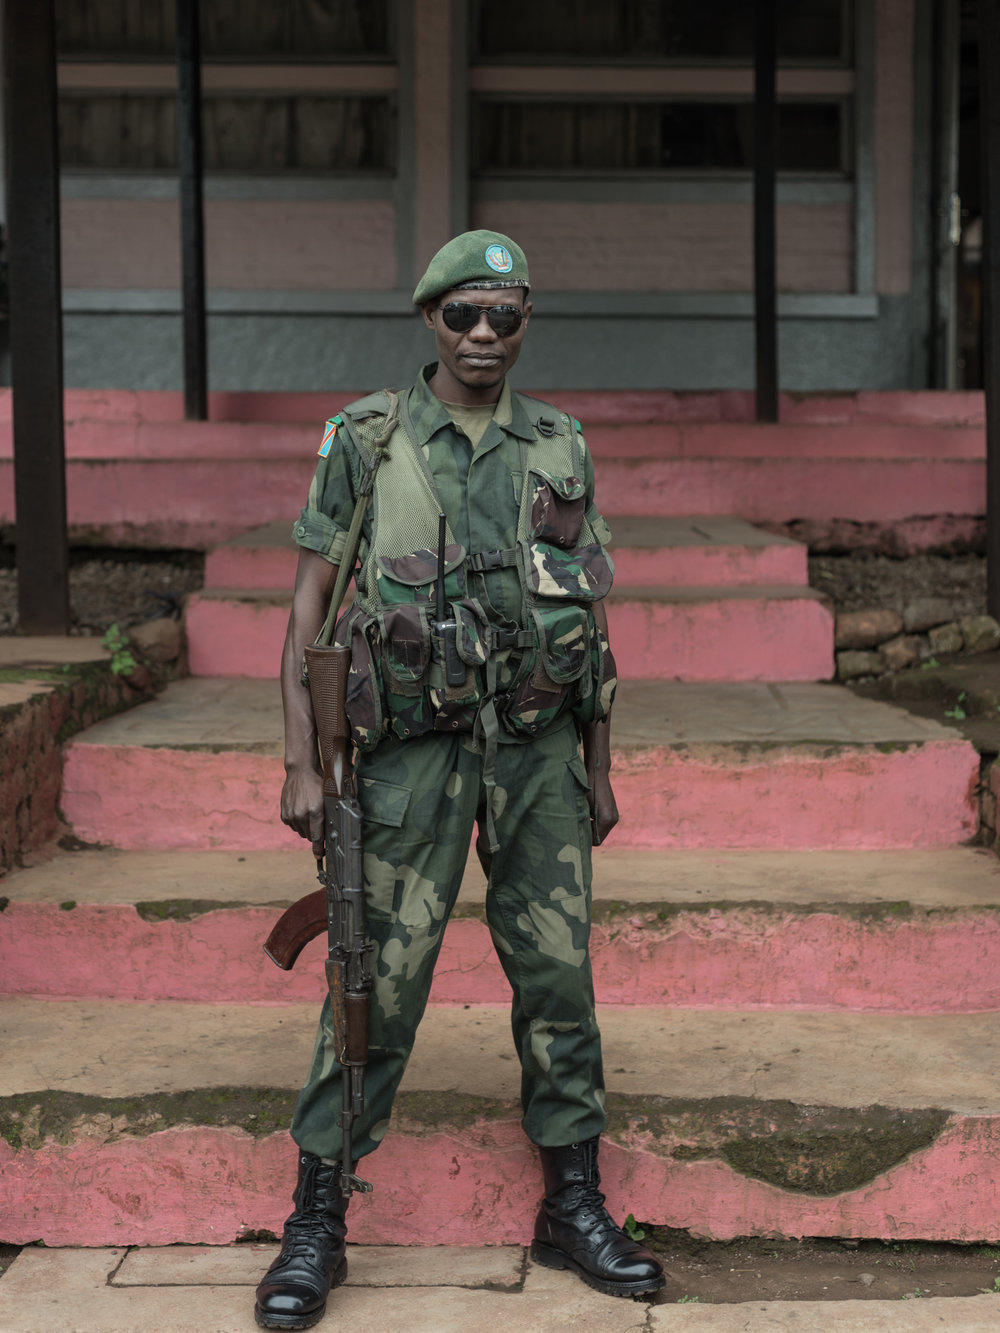 FARDC Fighter LOCATION Bukavu, Democratic Republic of Congo DESCRIPTION Various militias regularly employ slavery, systematic rape, and forced cannibalism as weapons in irregular mines. Regular FARDC fighters are trained by the Archdiocese of Bukavu to counter these severe human rights violations.